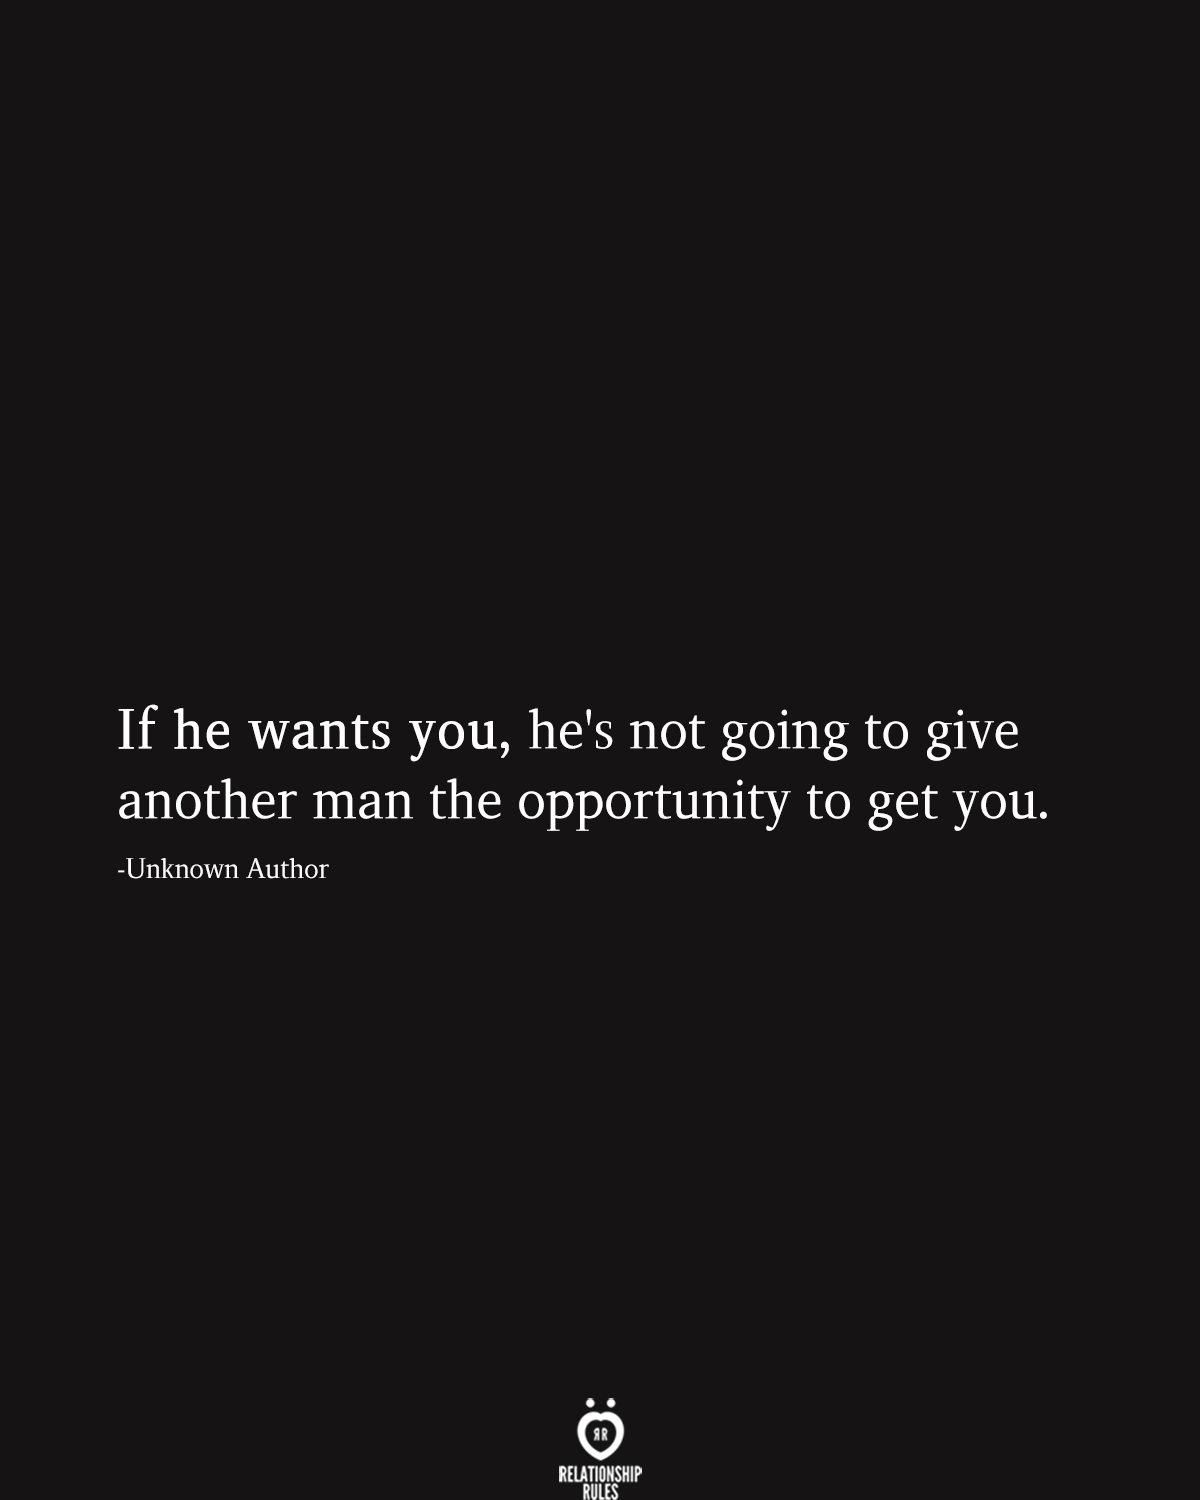 If He Wants You, He's Not Going To Give Another Man The Opportunity To Get You #logicboard